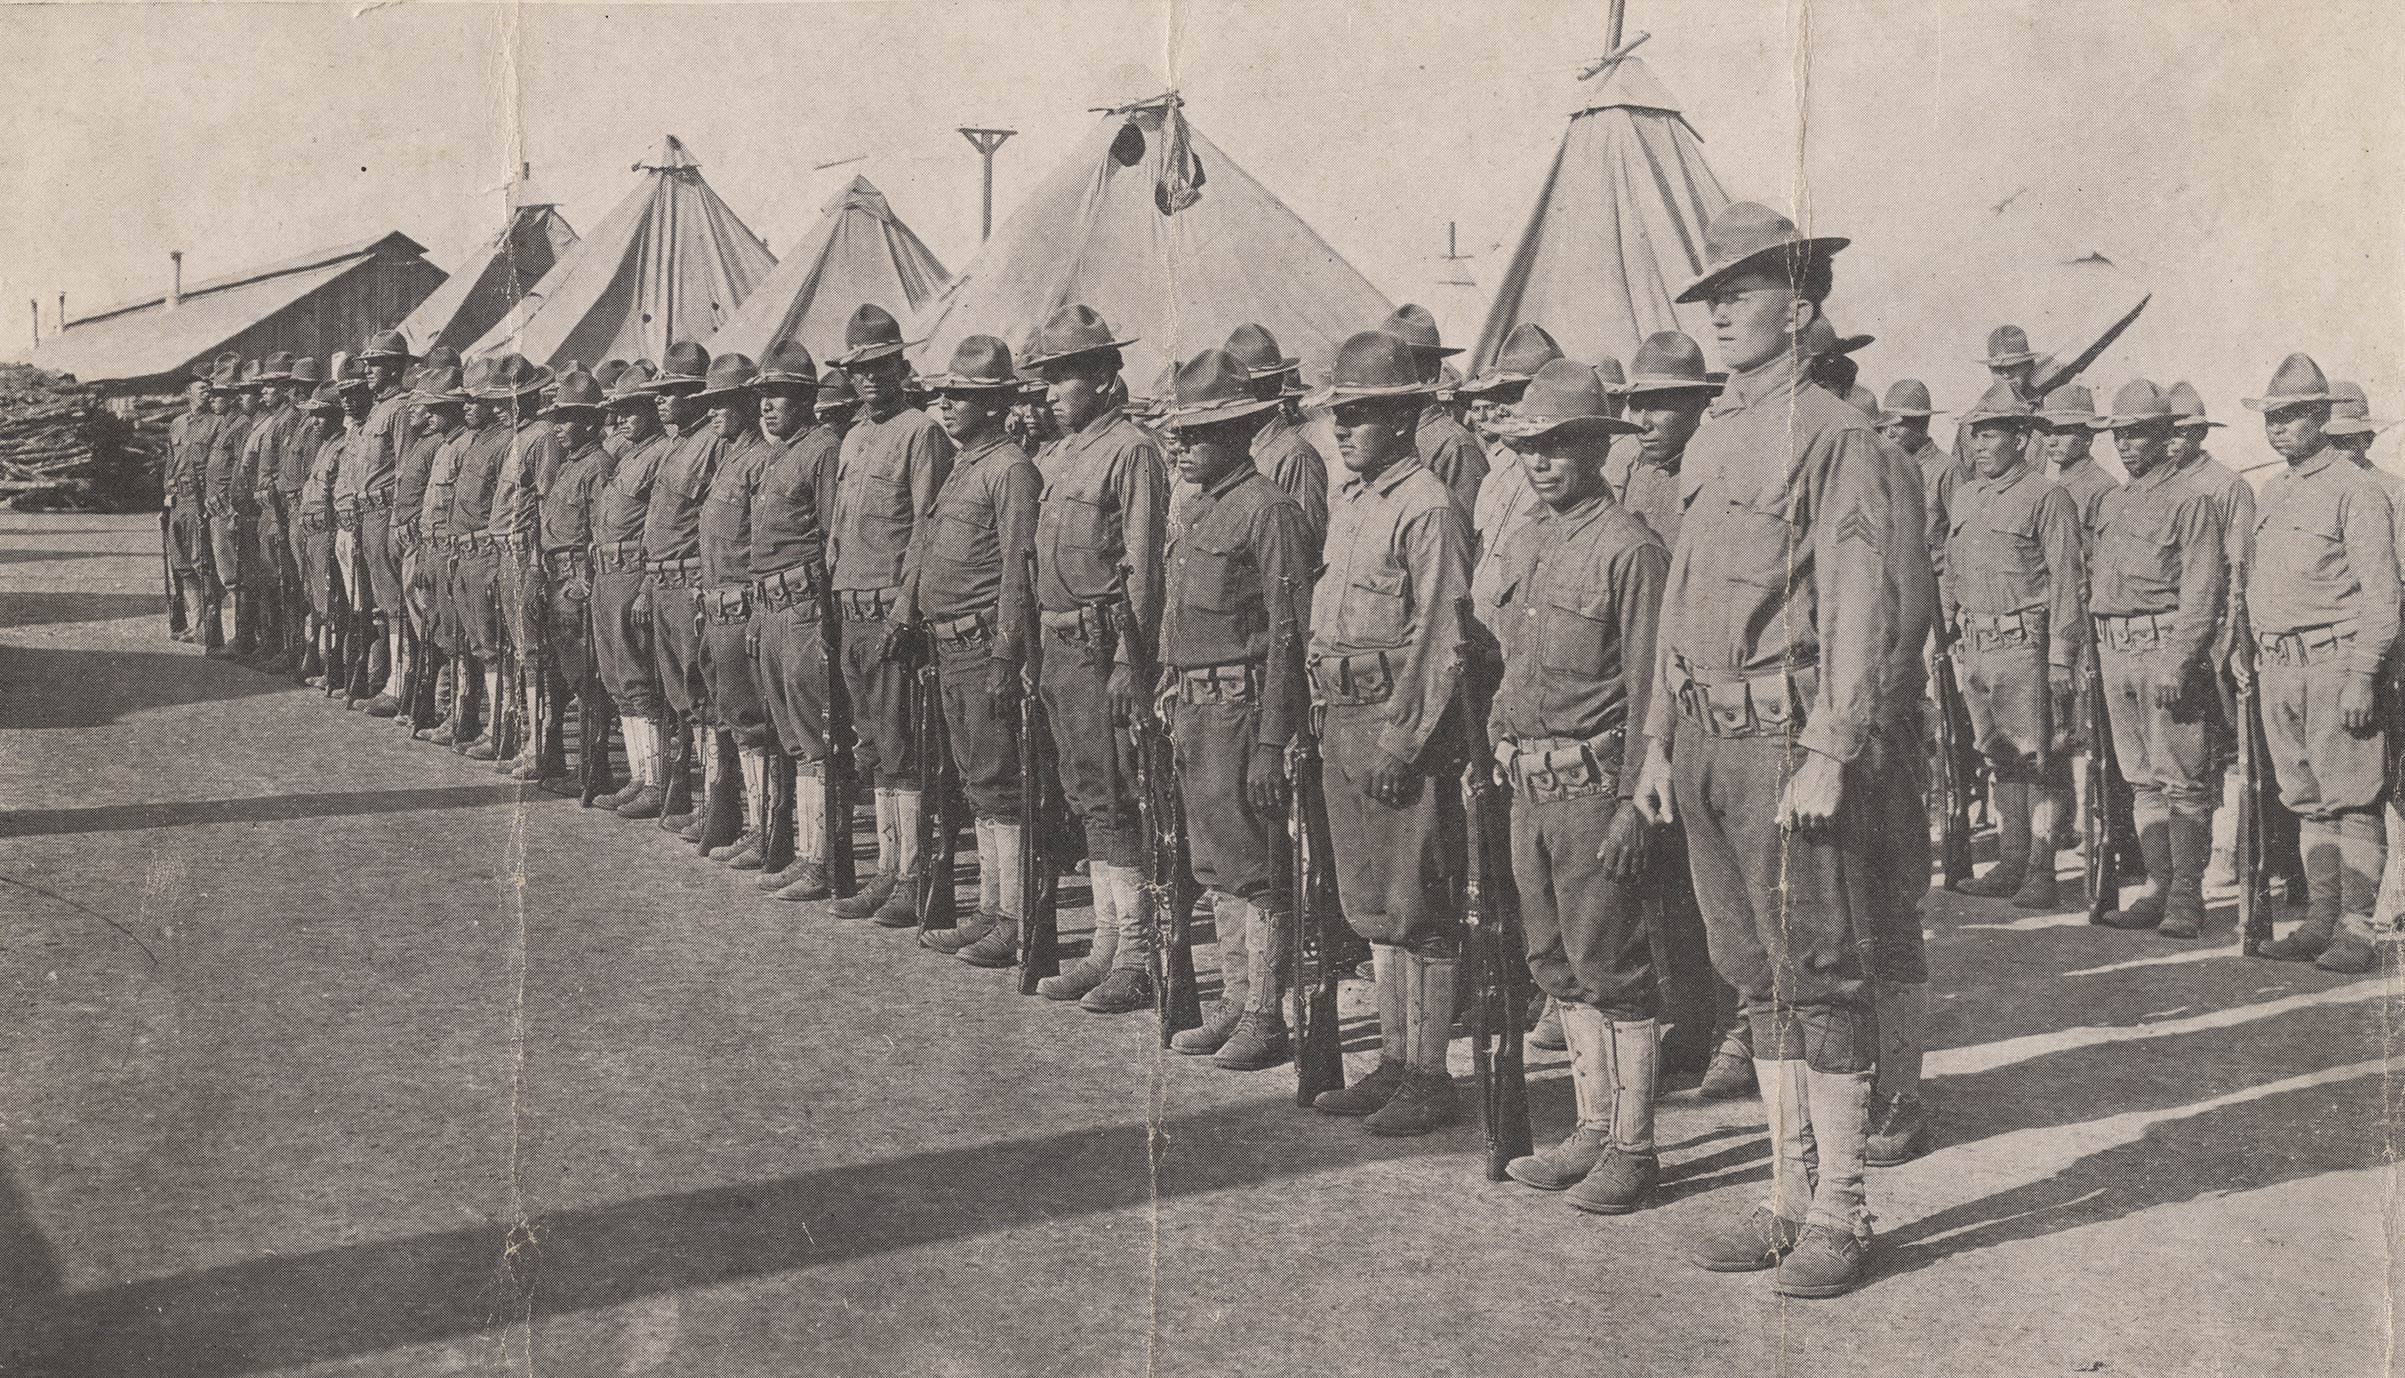 The American Indians who served with Company E, 142nd Infantry, 36th Division, during World War I were some of the nation's first  code-talkers